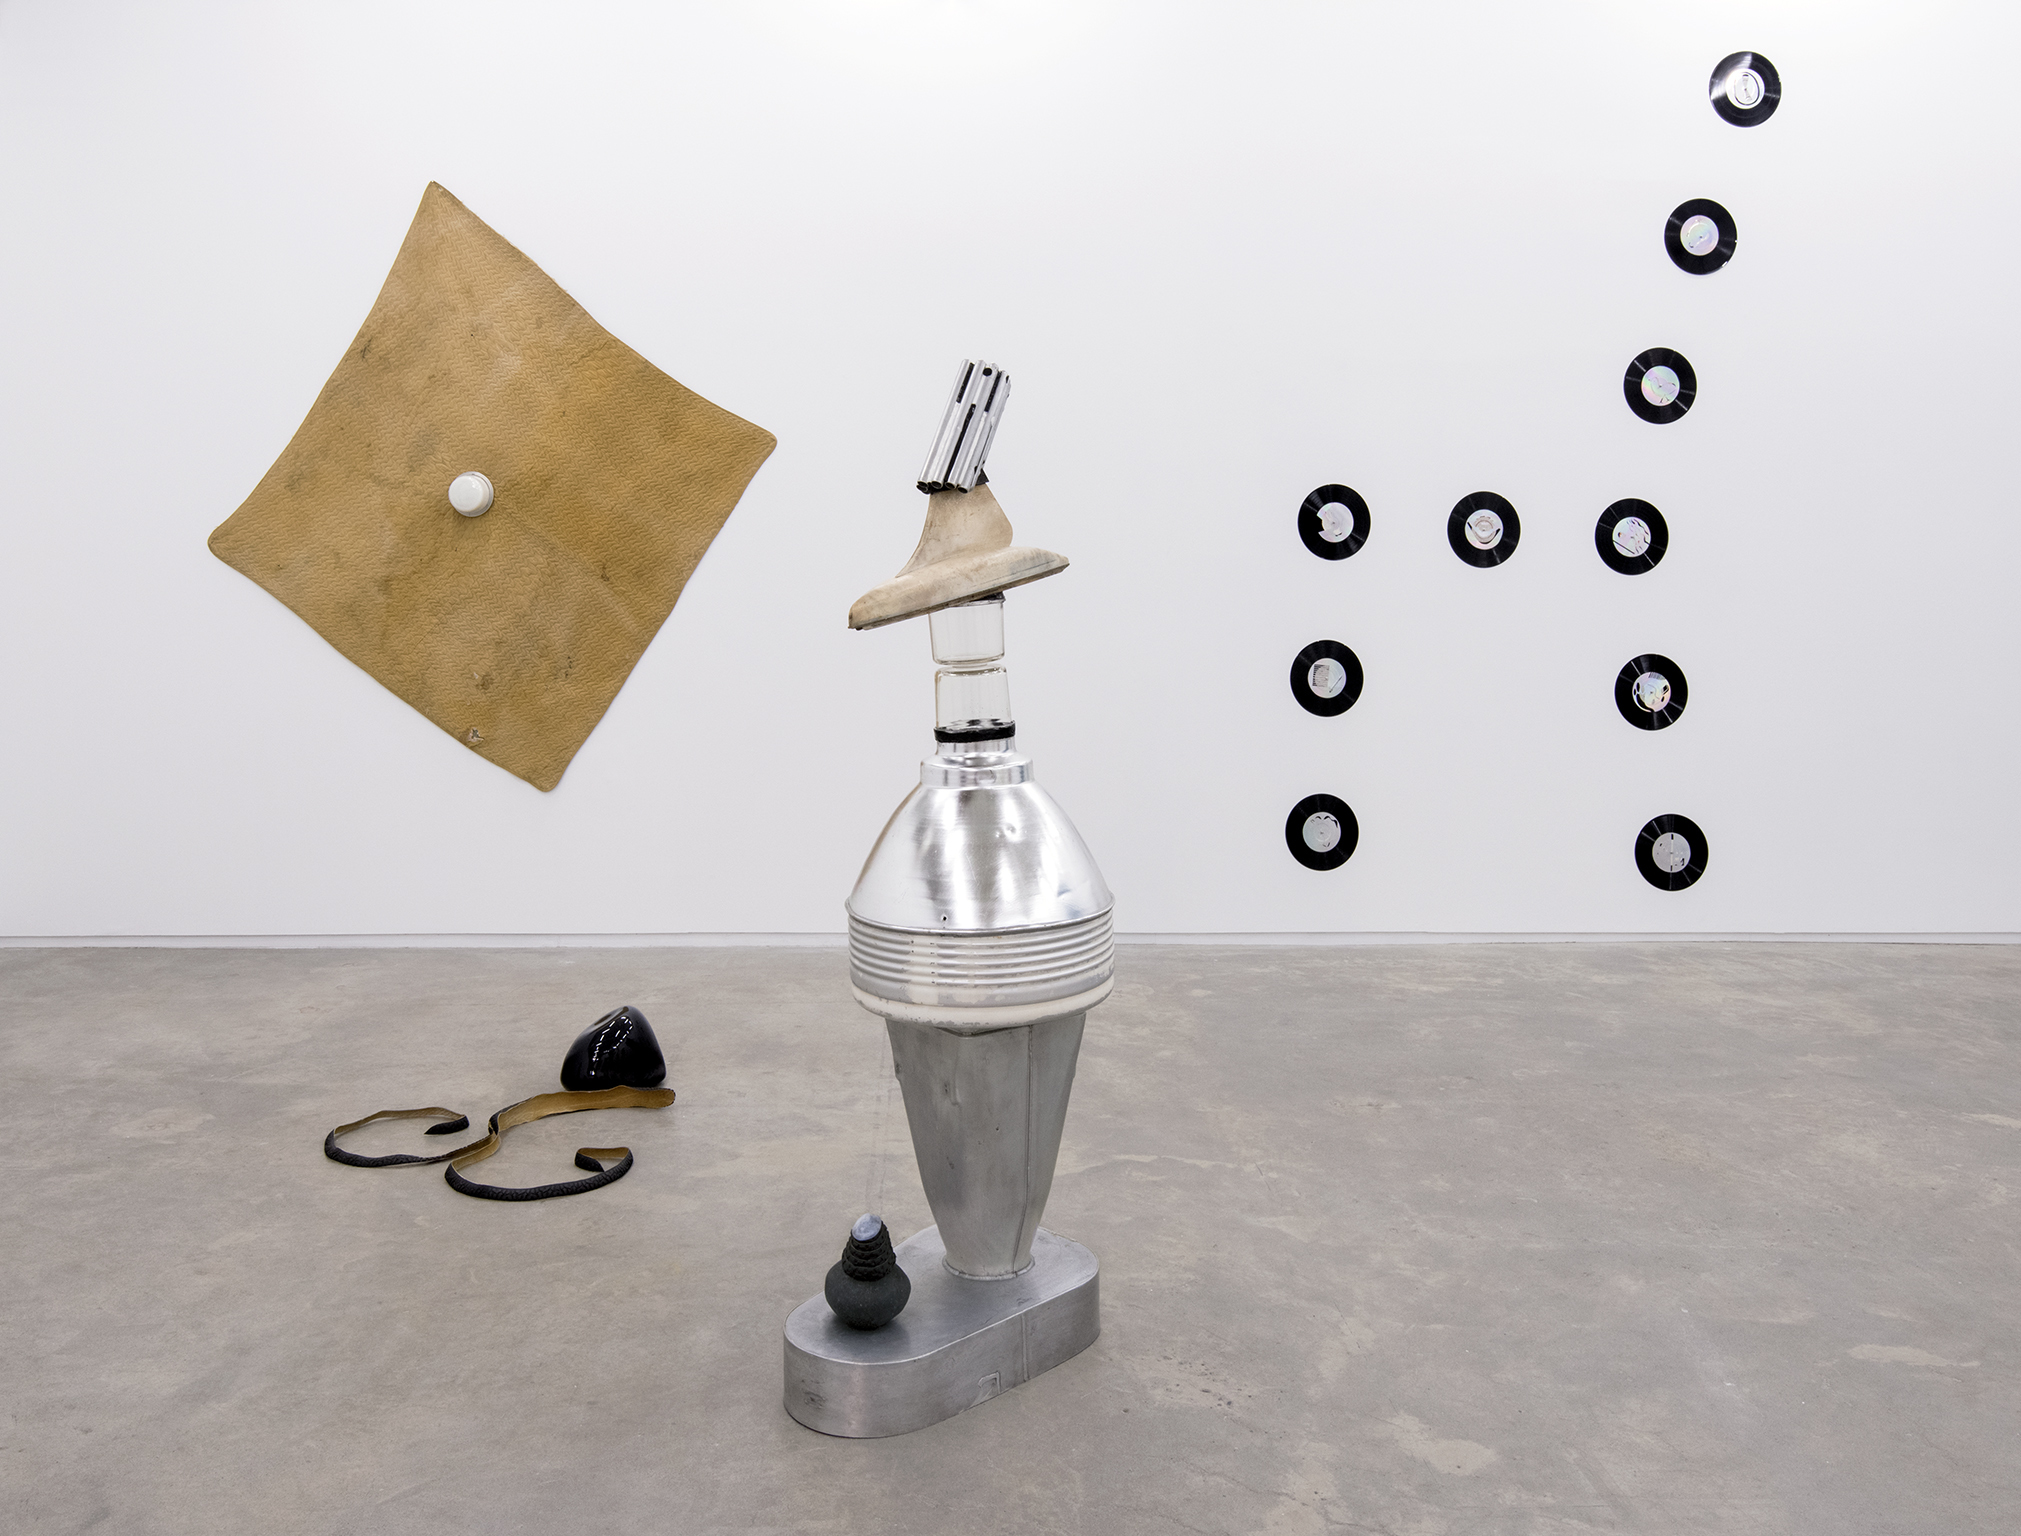 Jerry Pethick, Kolossus of Kindergarden, 1987–1989, spectra-foil on records, aluminium, blown glass, wood, rock, tires, cargo blanket, dimensions variable by